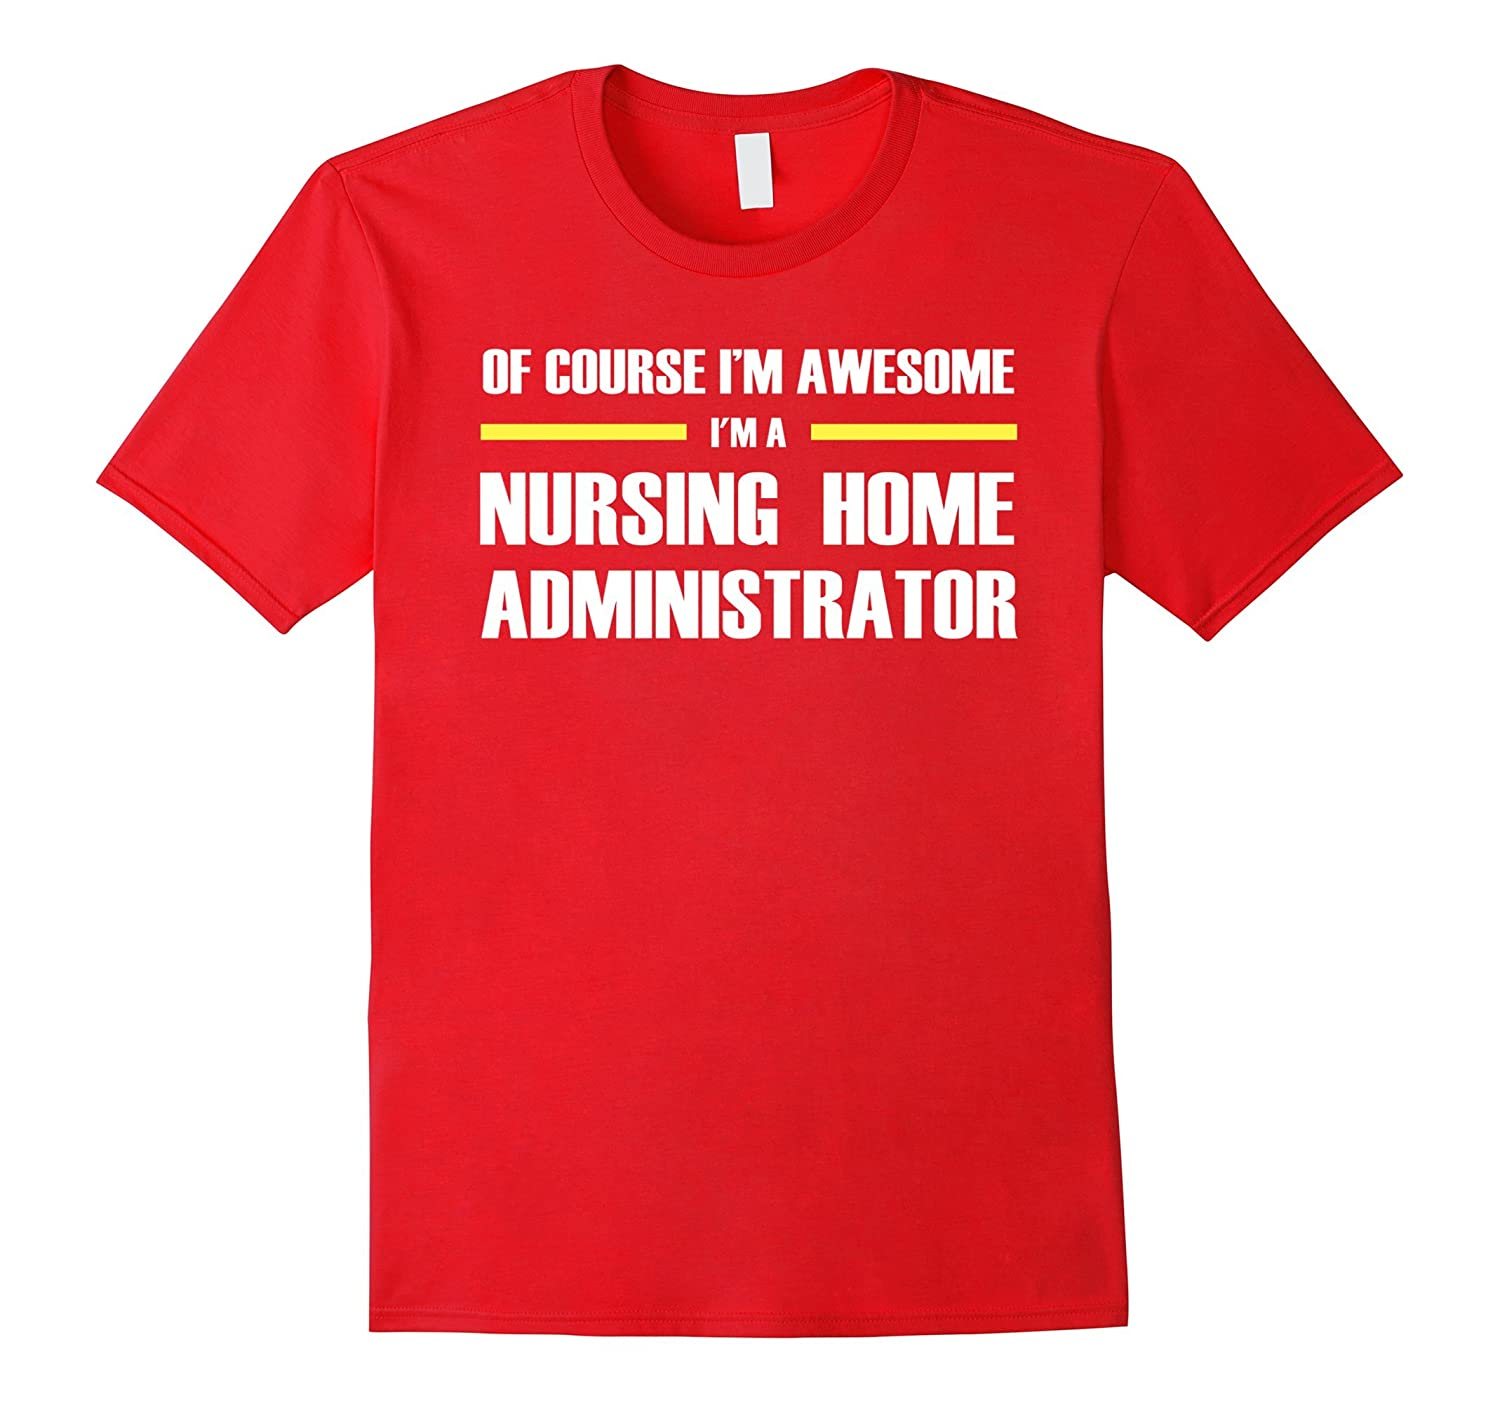 nursing home administrator A nursing home administrator is a leader managing nursing home facilities, staff,  patients, admissions and budget learn about their career outlook.